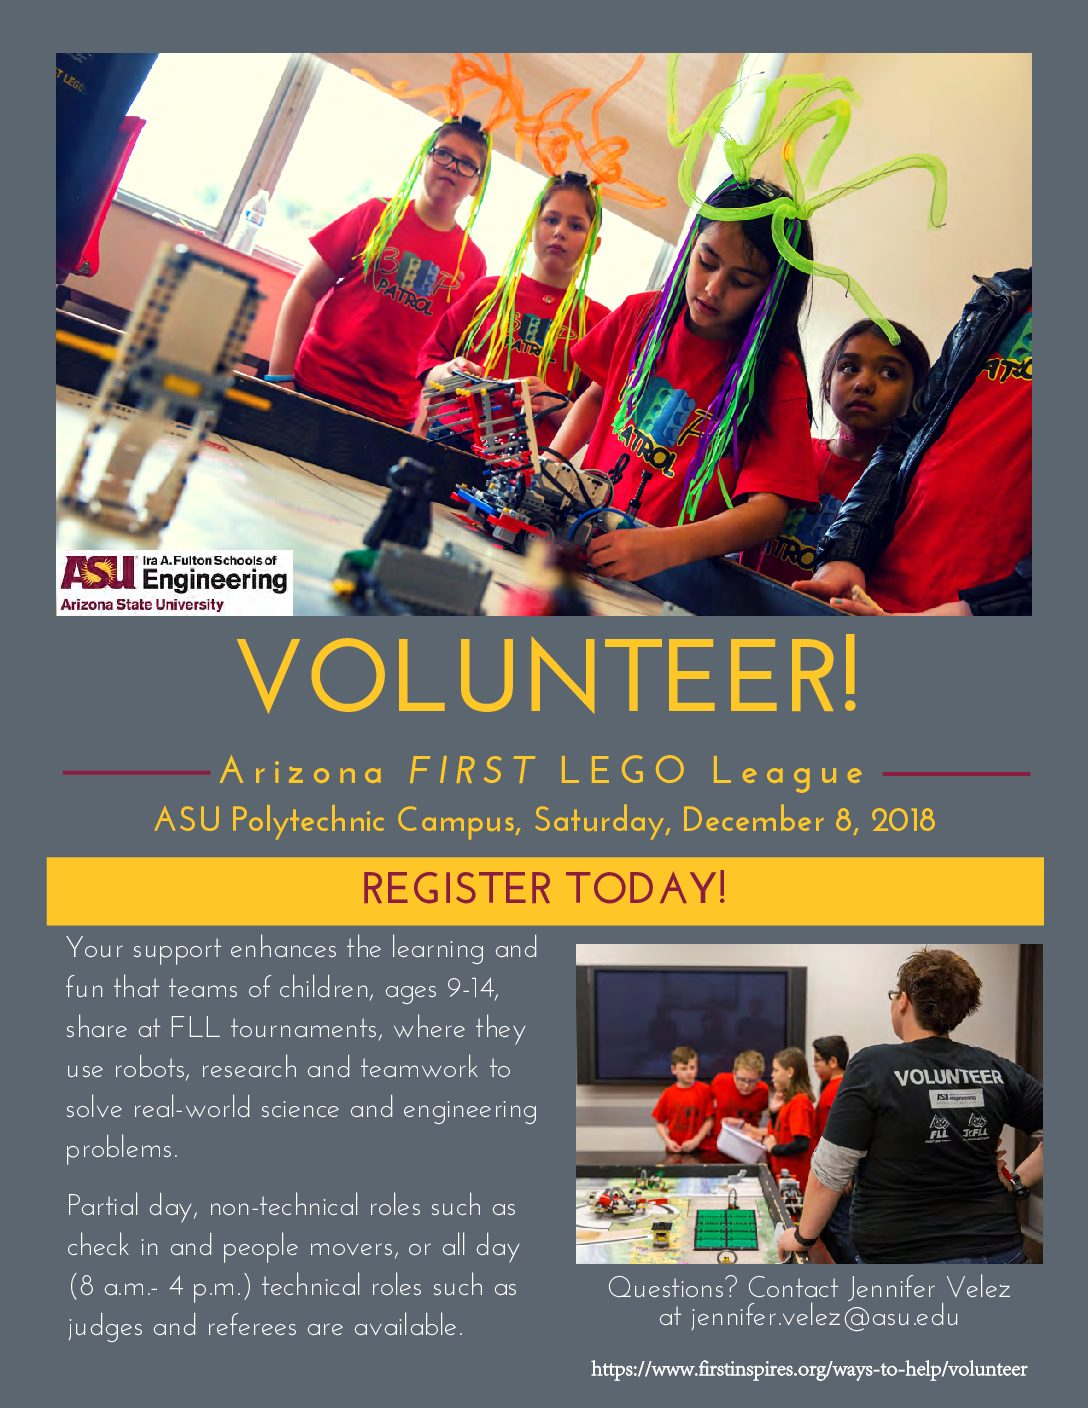 Volunteer for First Lego League, December 8